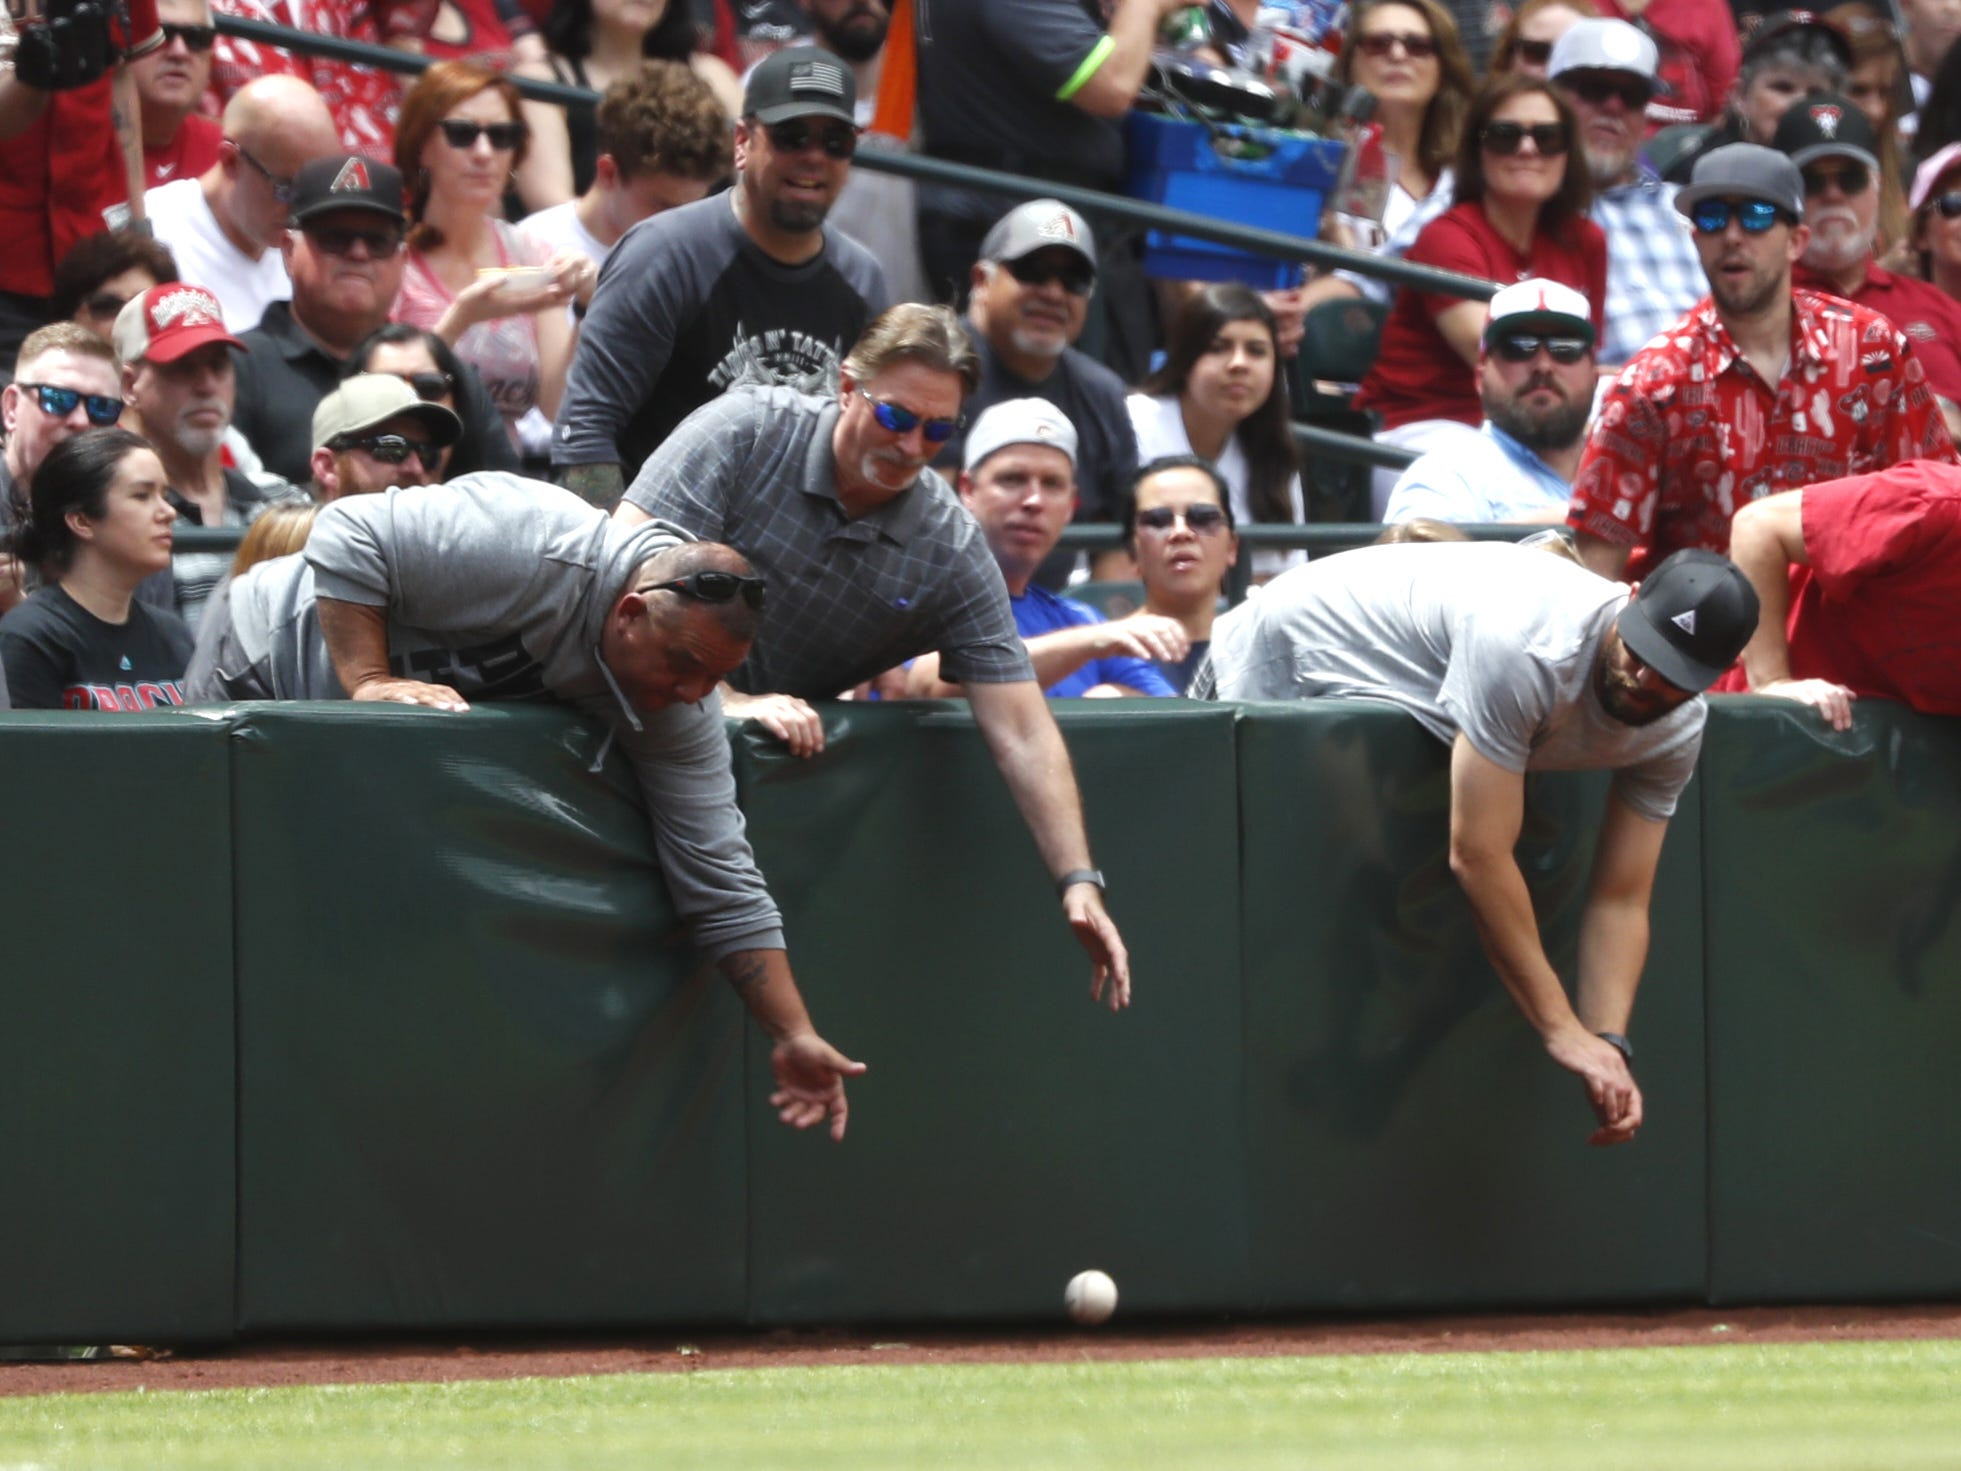 Fans try to grab a foul ball during a Diamondbacks game against the Braves at Chase Field in Phoenix, Ariz. on May 12, 2019.